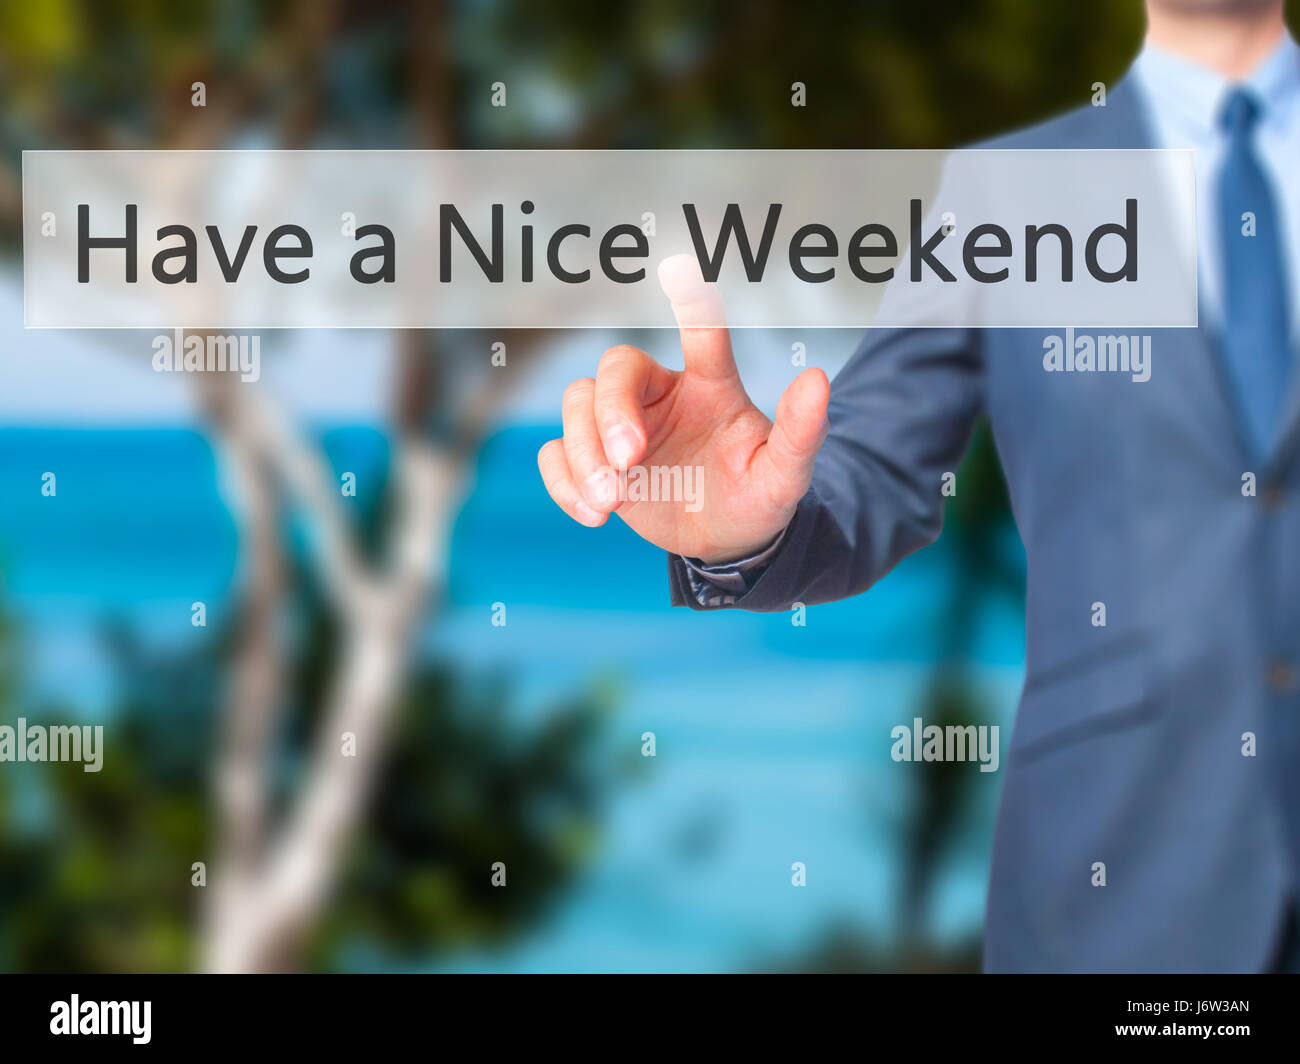 Have A Nice Weekend Businessman Hand Pressing Button On Touch